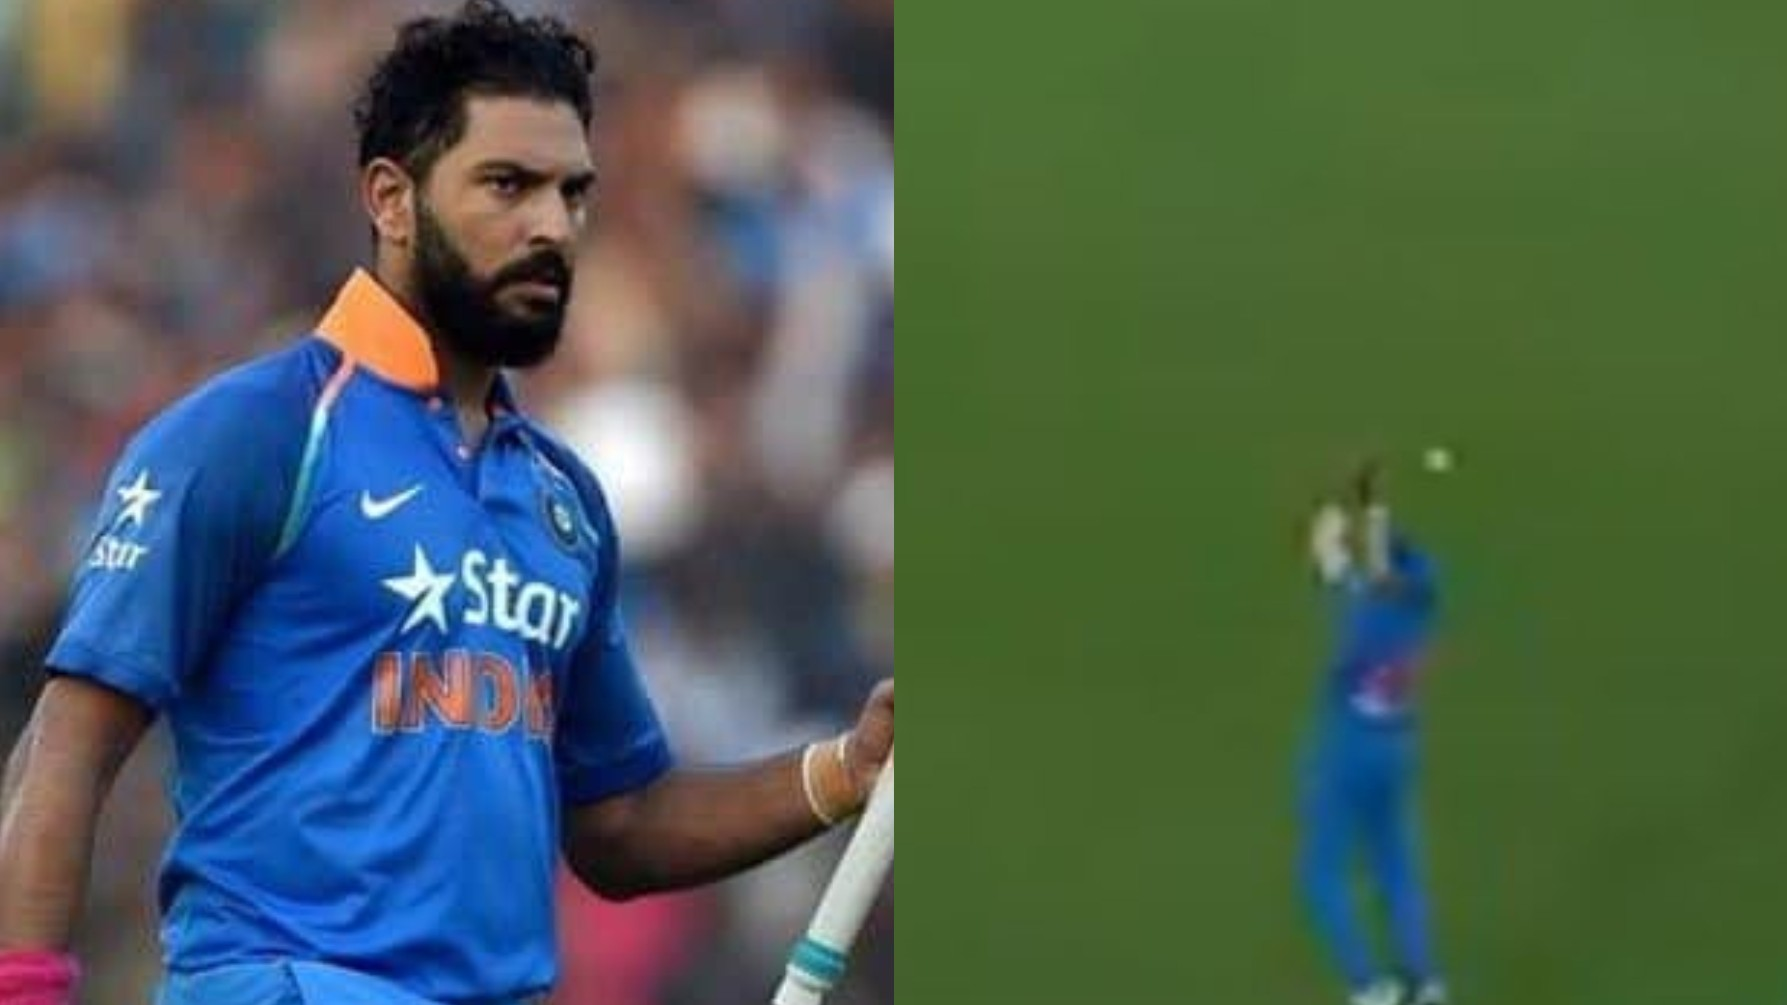 IND v WI 2019: Yuvraj Singh slams young guns for their sloppy fielding in first T20I